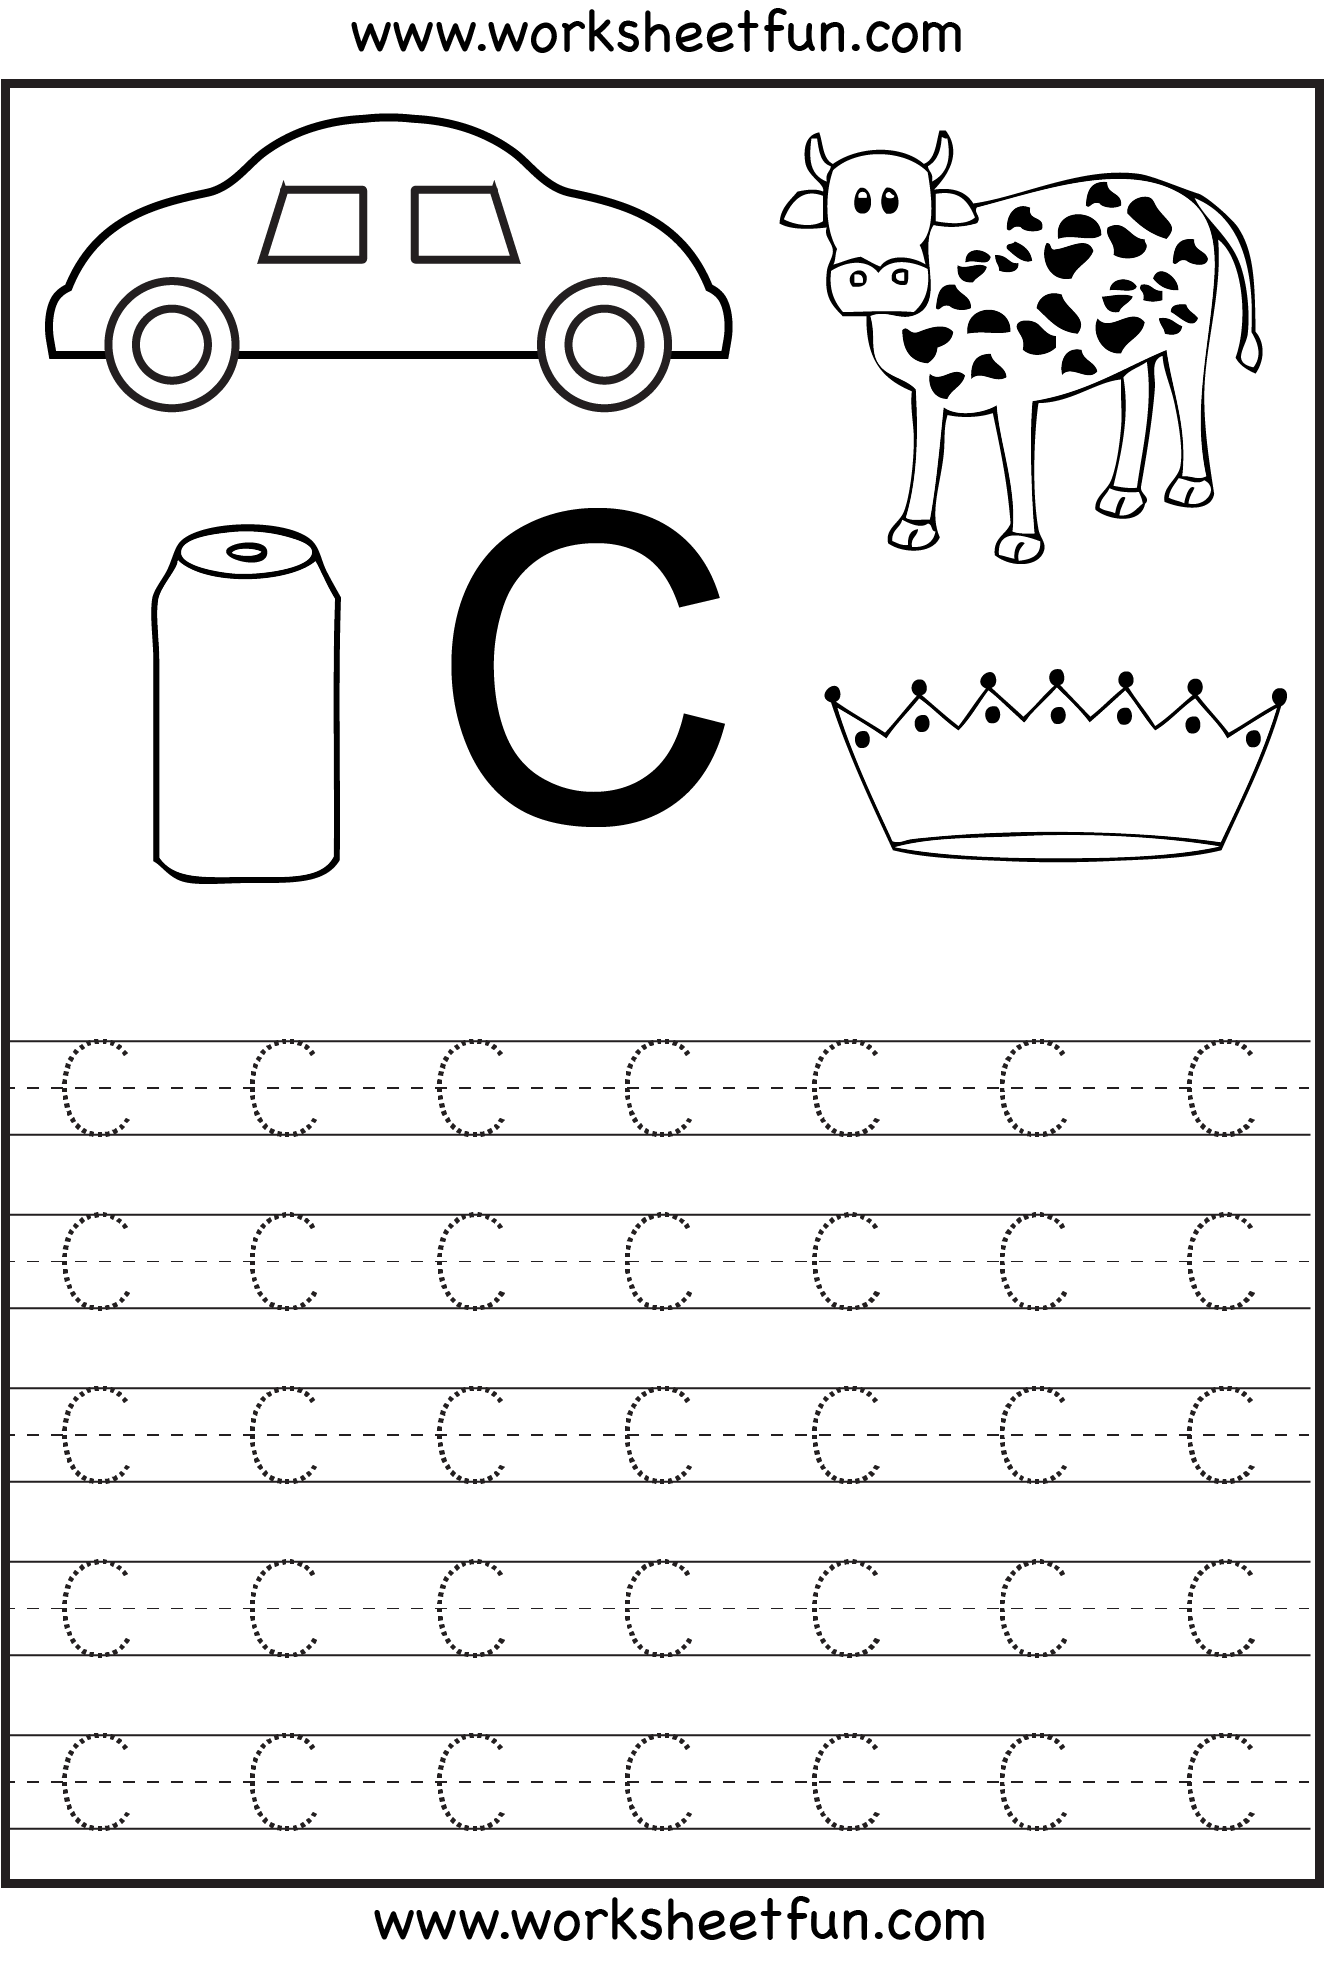 Worksheet Tracing The Letter C worksheetfun free printable worksheets kid activities letter tracing for kindergarten capital letters alphabet 26 printable